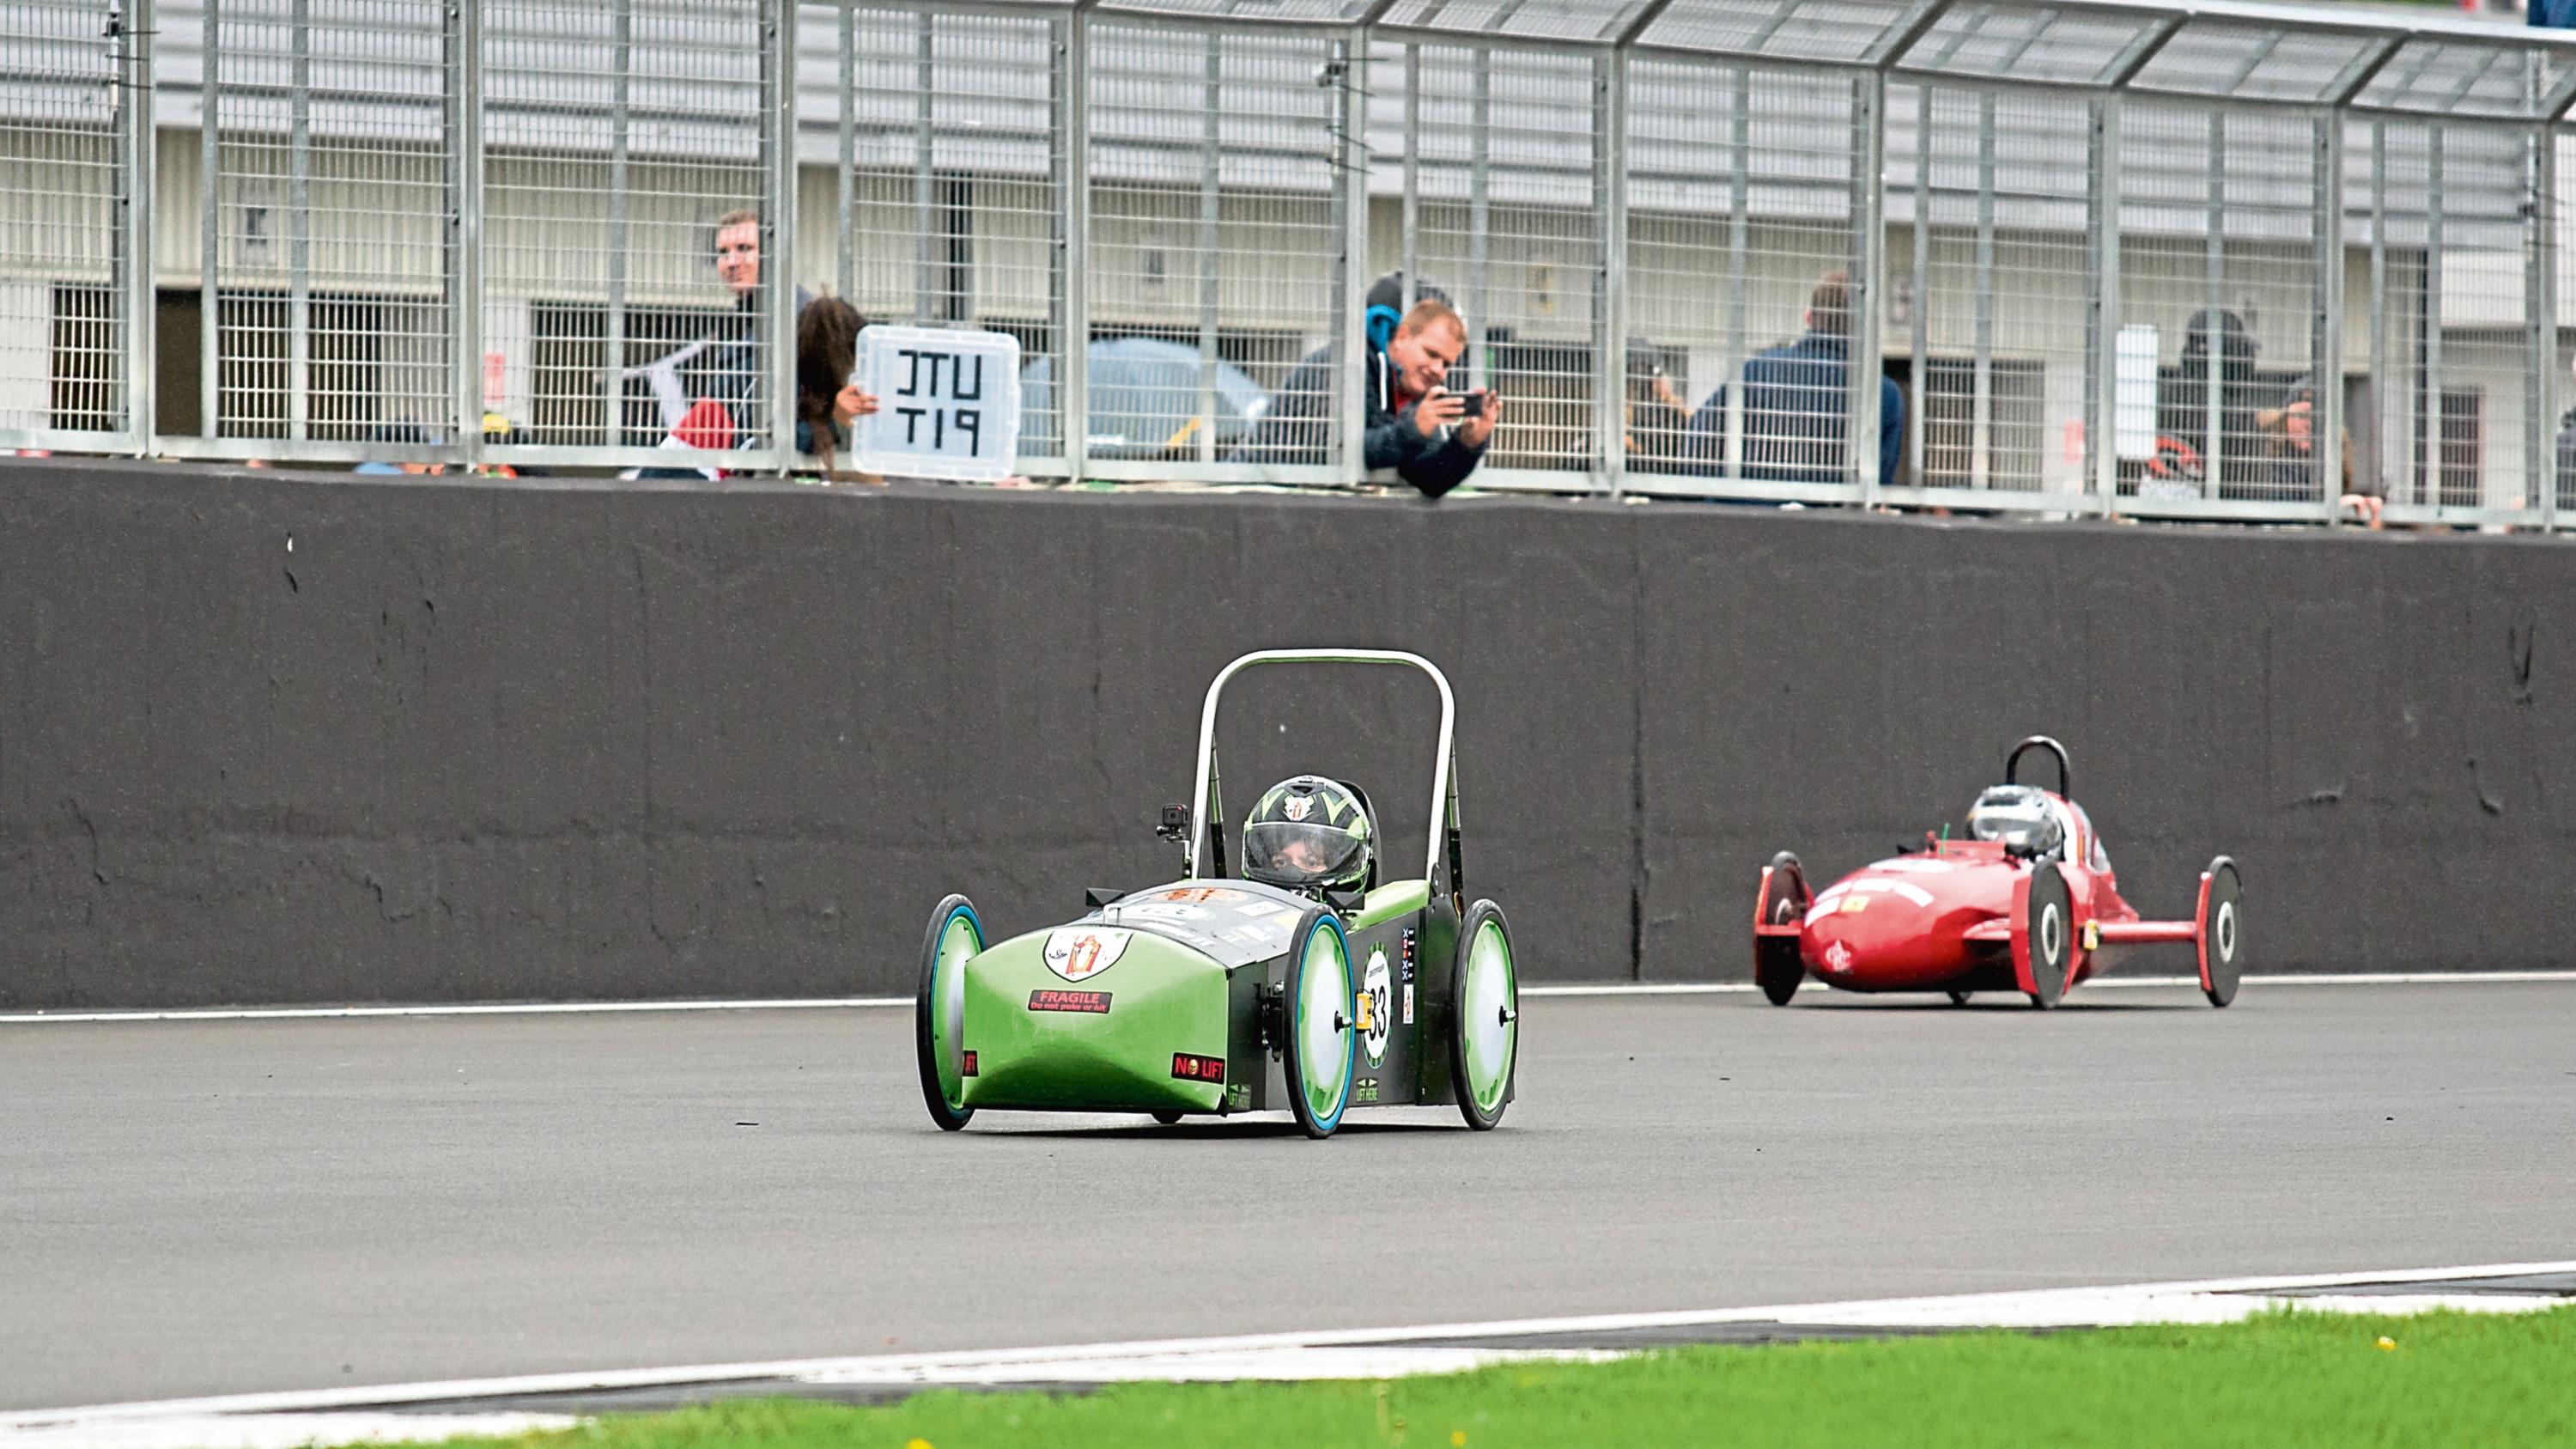 The electric cars race at the international final at Silverstone